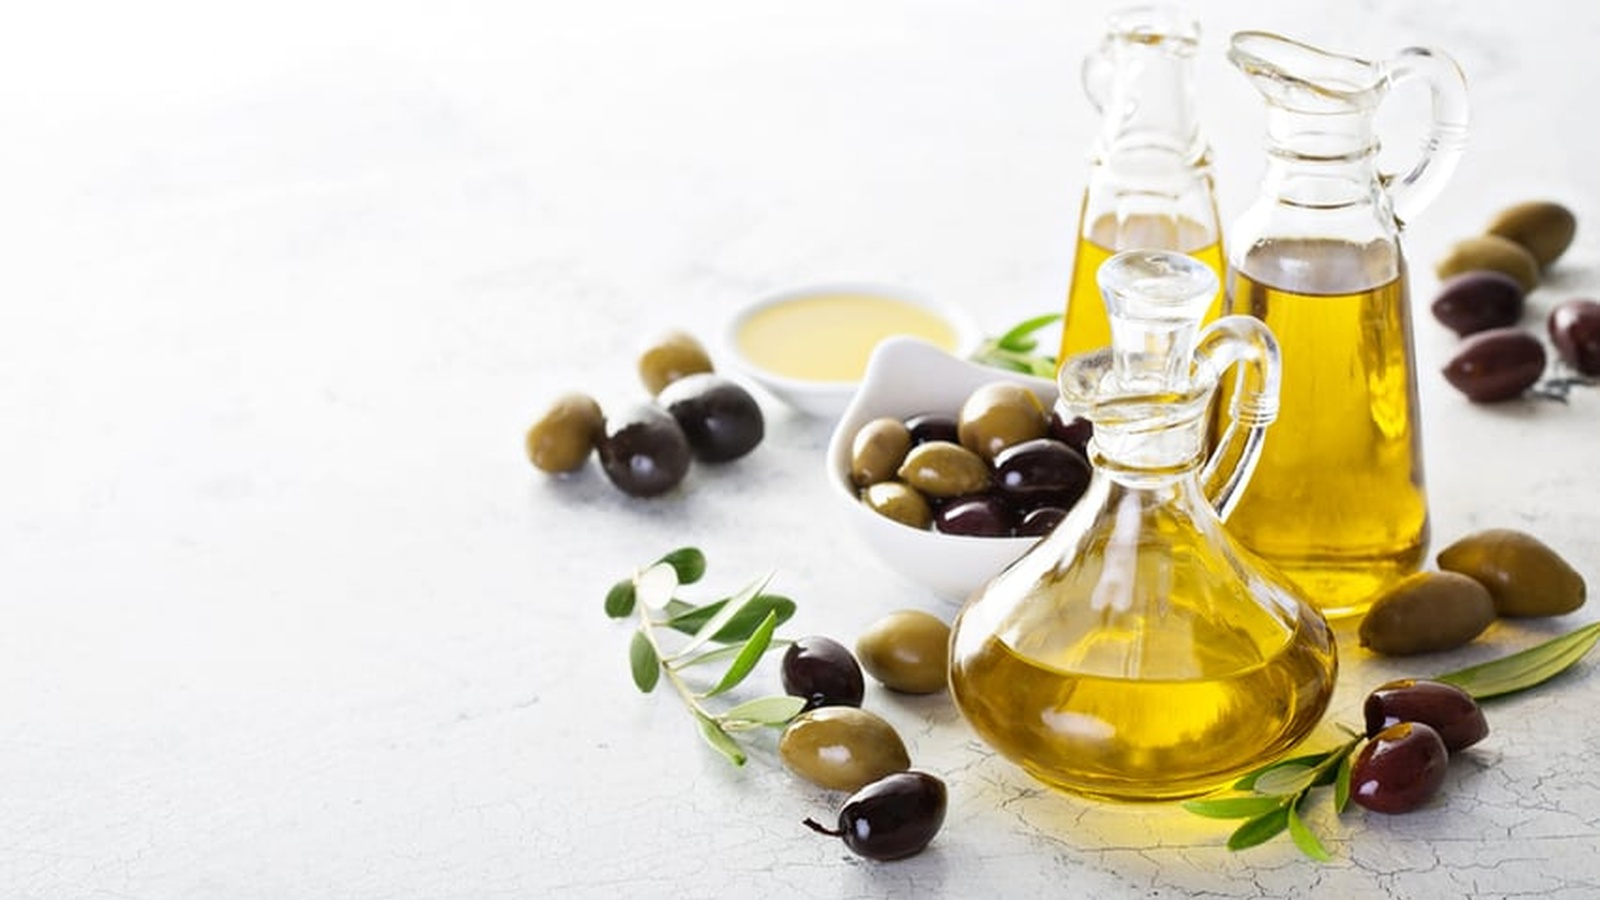 4 Of The Best Oils To Cook With